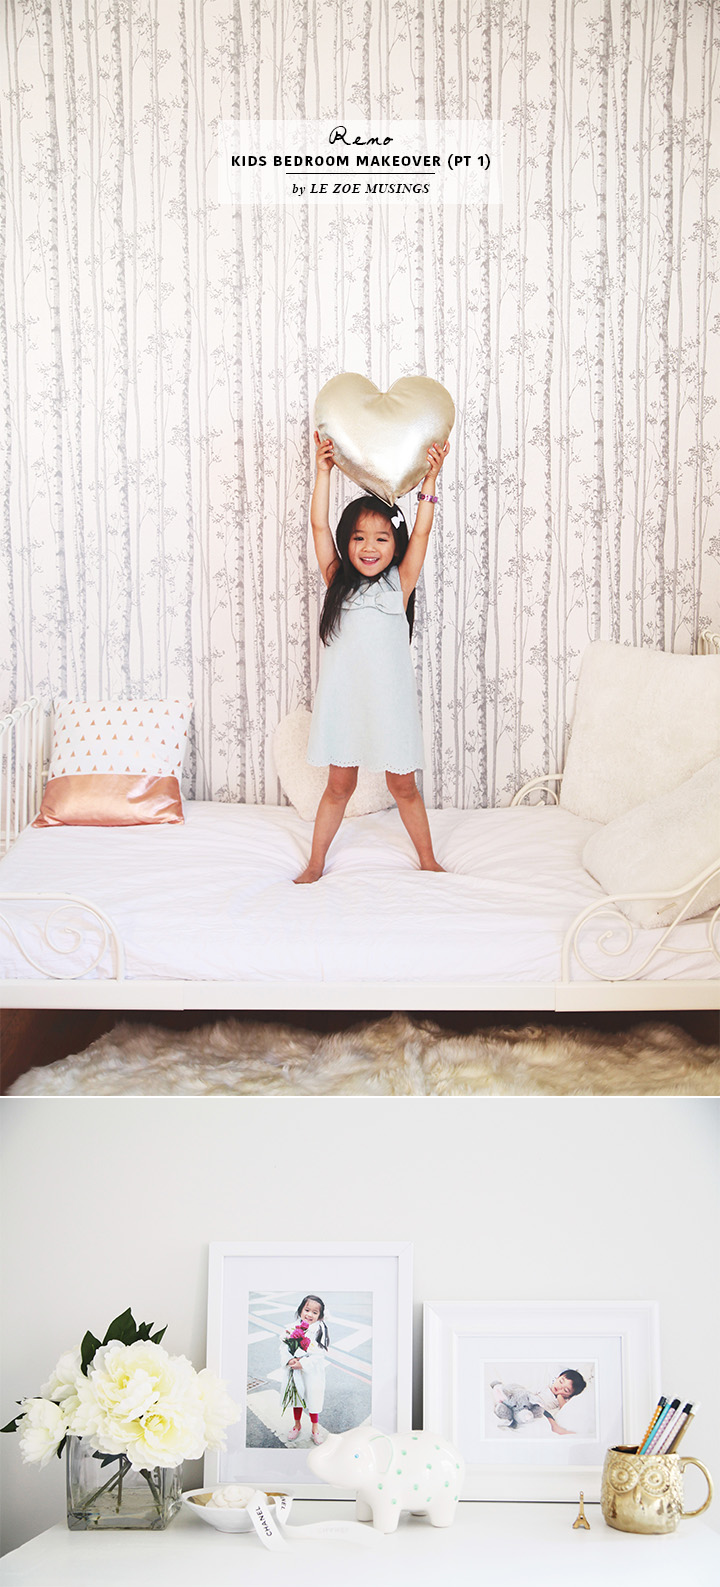 Kids Bedroom Makeover by Le Zoe Musings